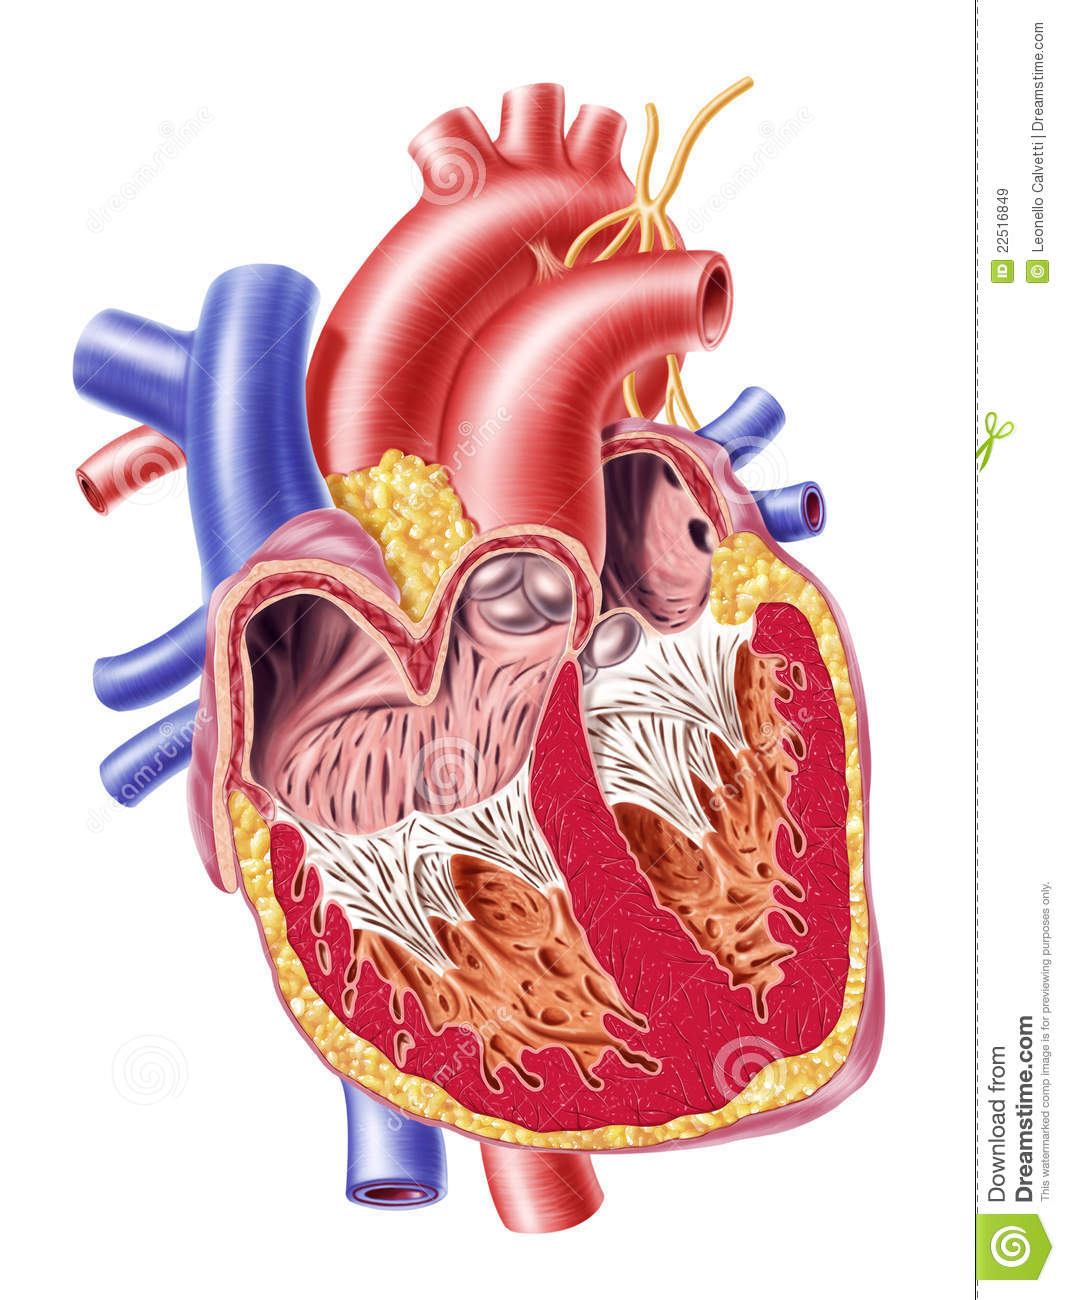 Human heart cross section stock illustration illustration of download human heart cross section stock illustration illustration of artery 22516849 ccuart Image collections